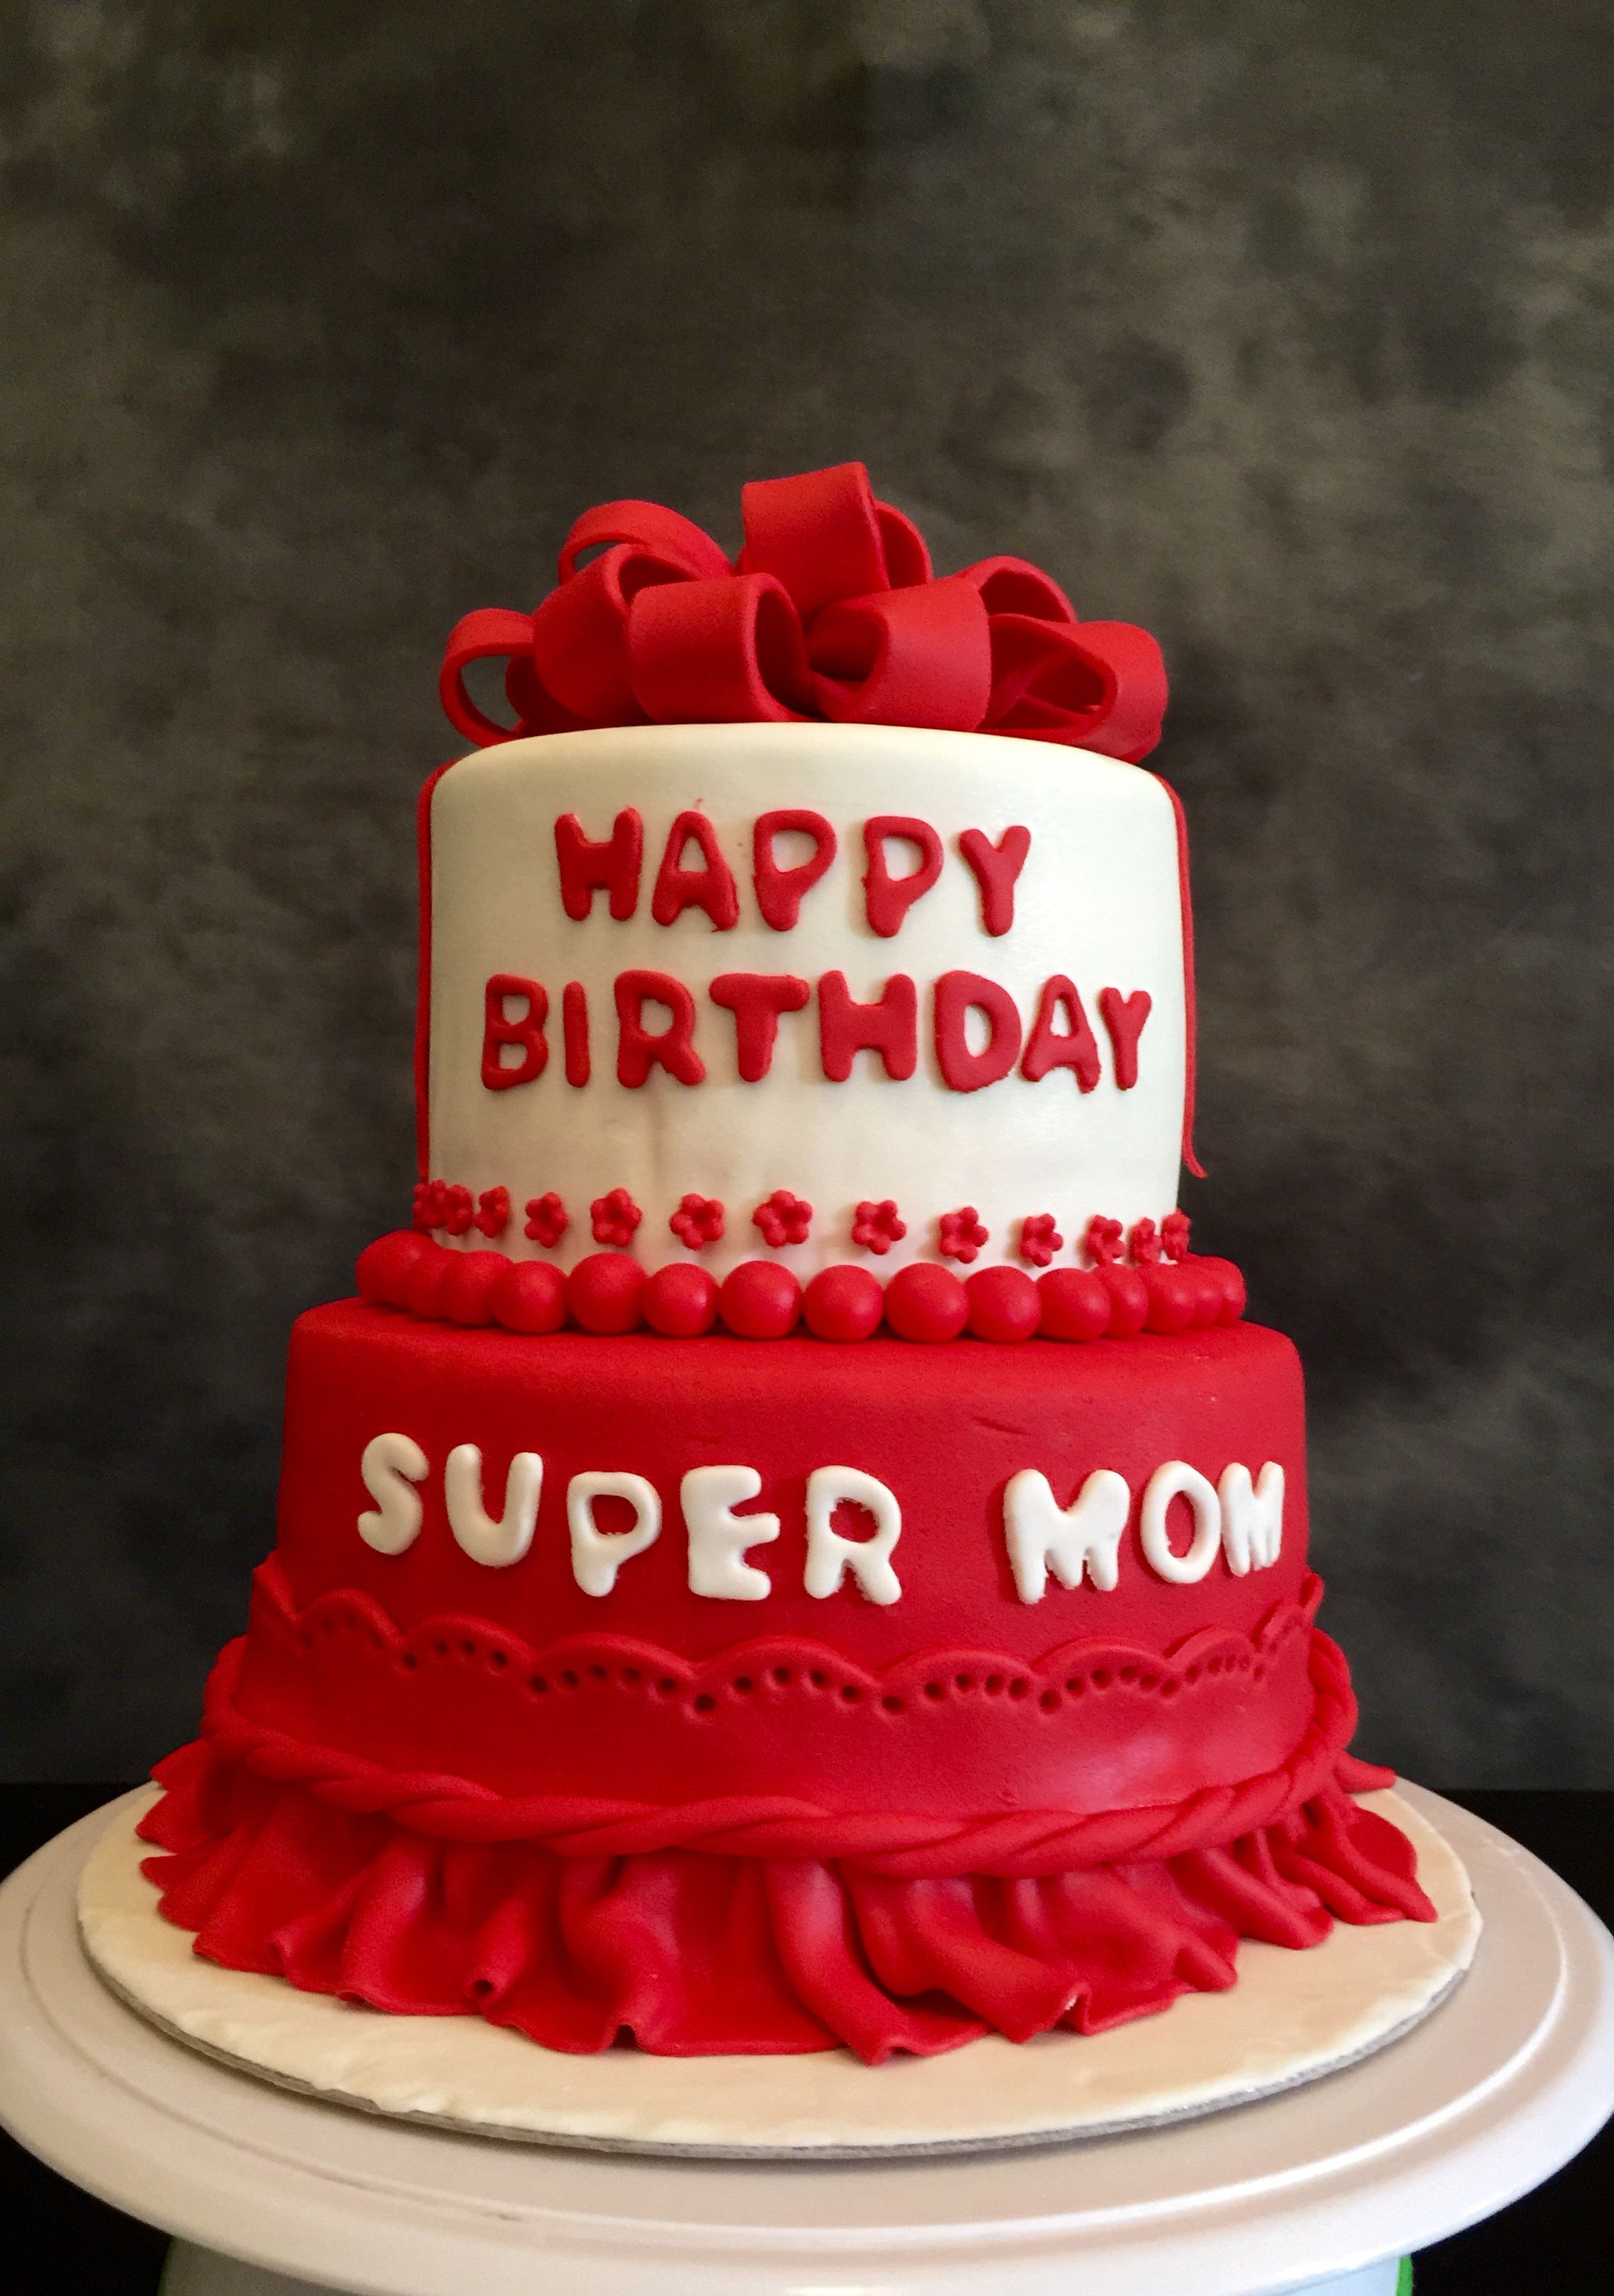 Swell Super Mom Birthday Cake With Images Birthday Cake For Mom Birthday Cards Printable Opercafe Filternl